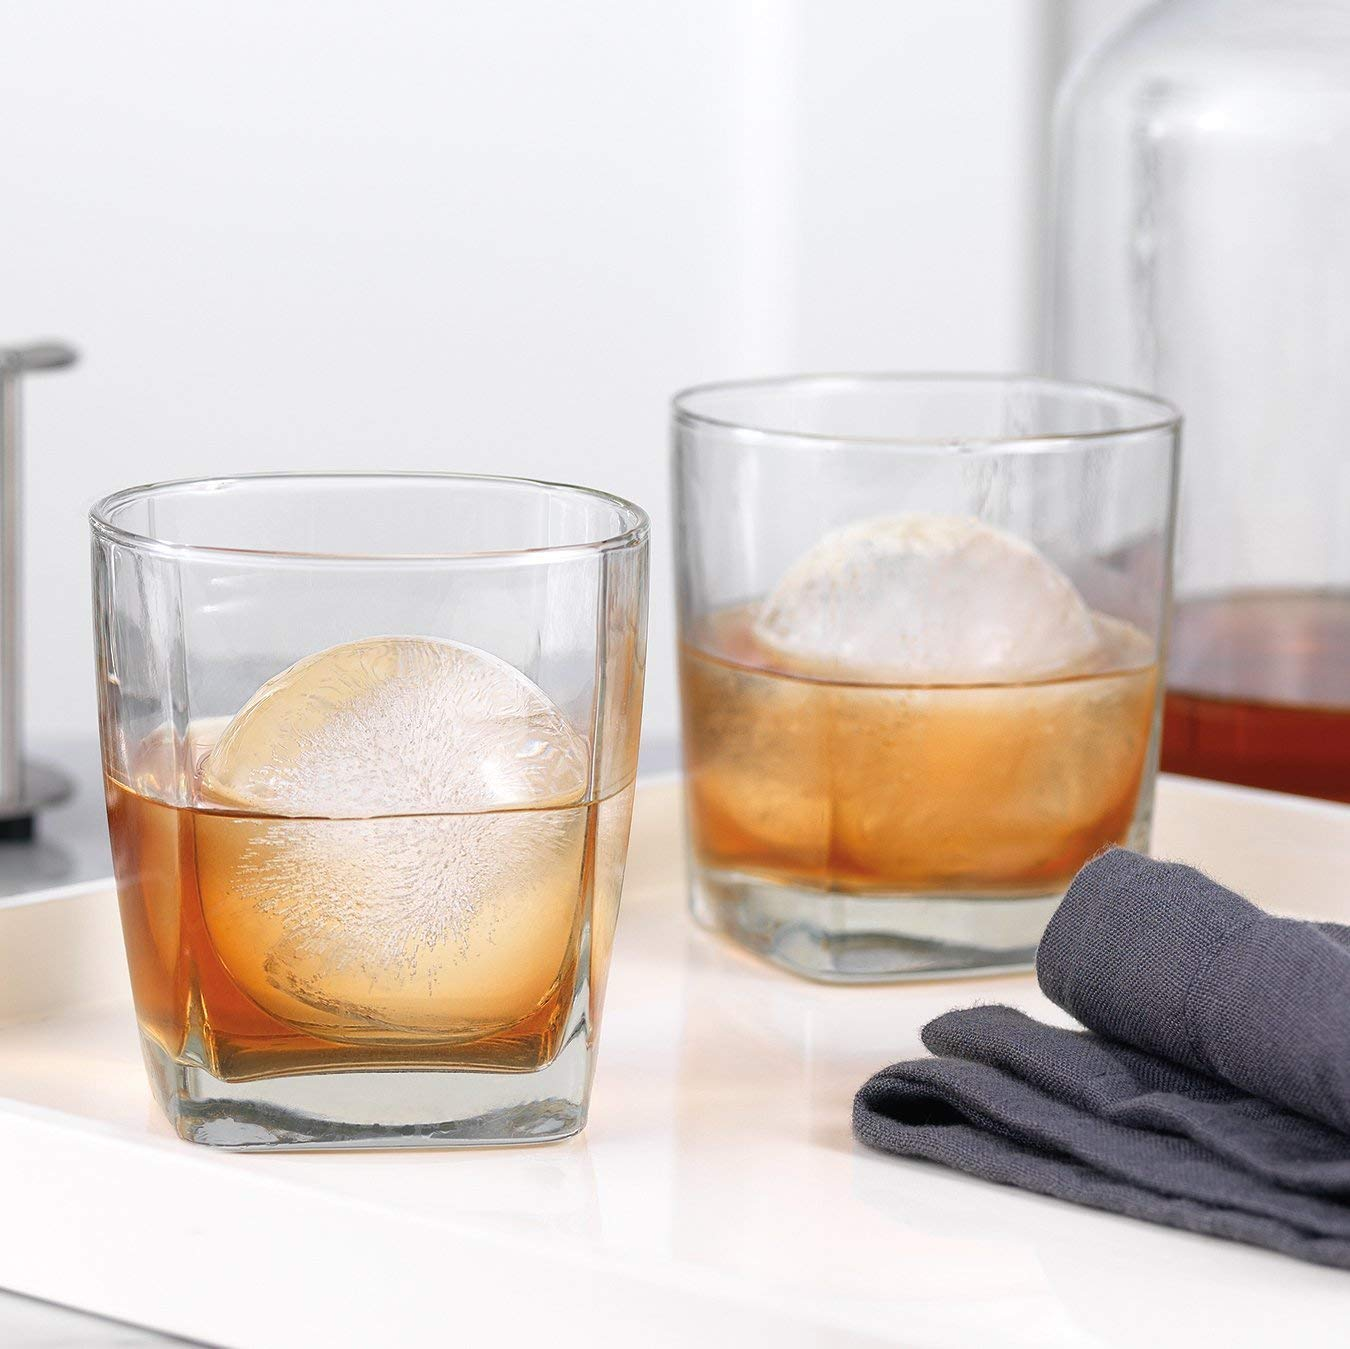 71sJi6FZEVL. SL1350 - Stylish Gifts for the Cocktail Enthusiast